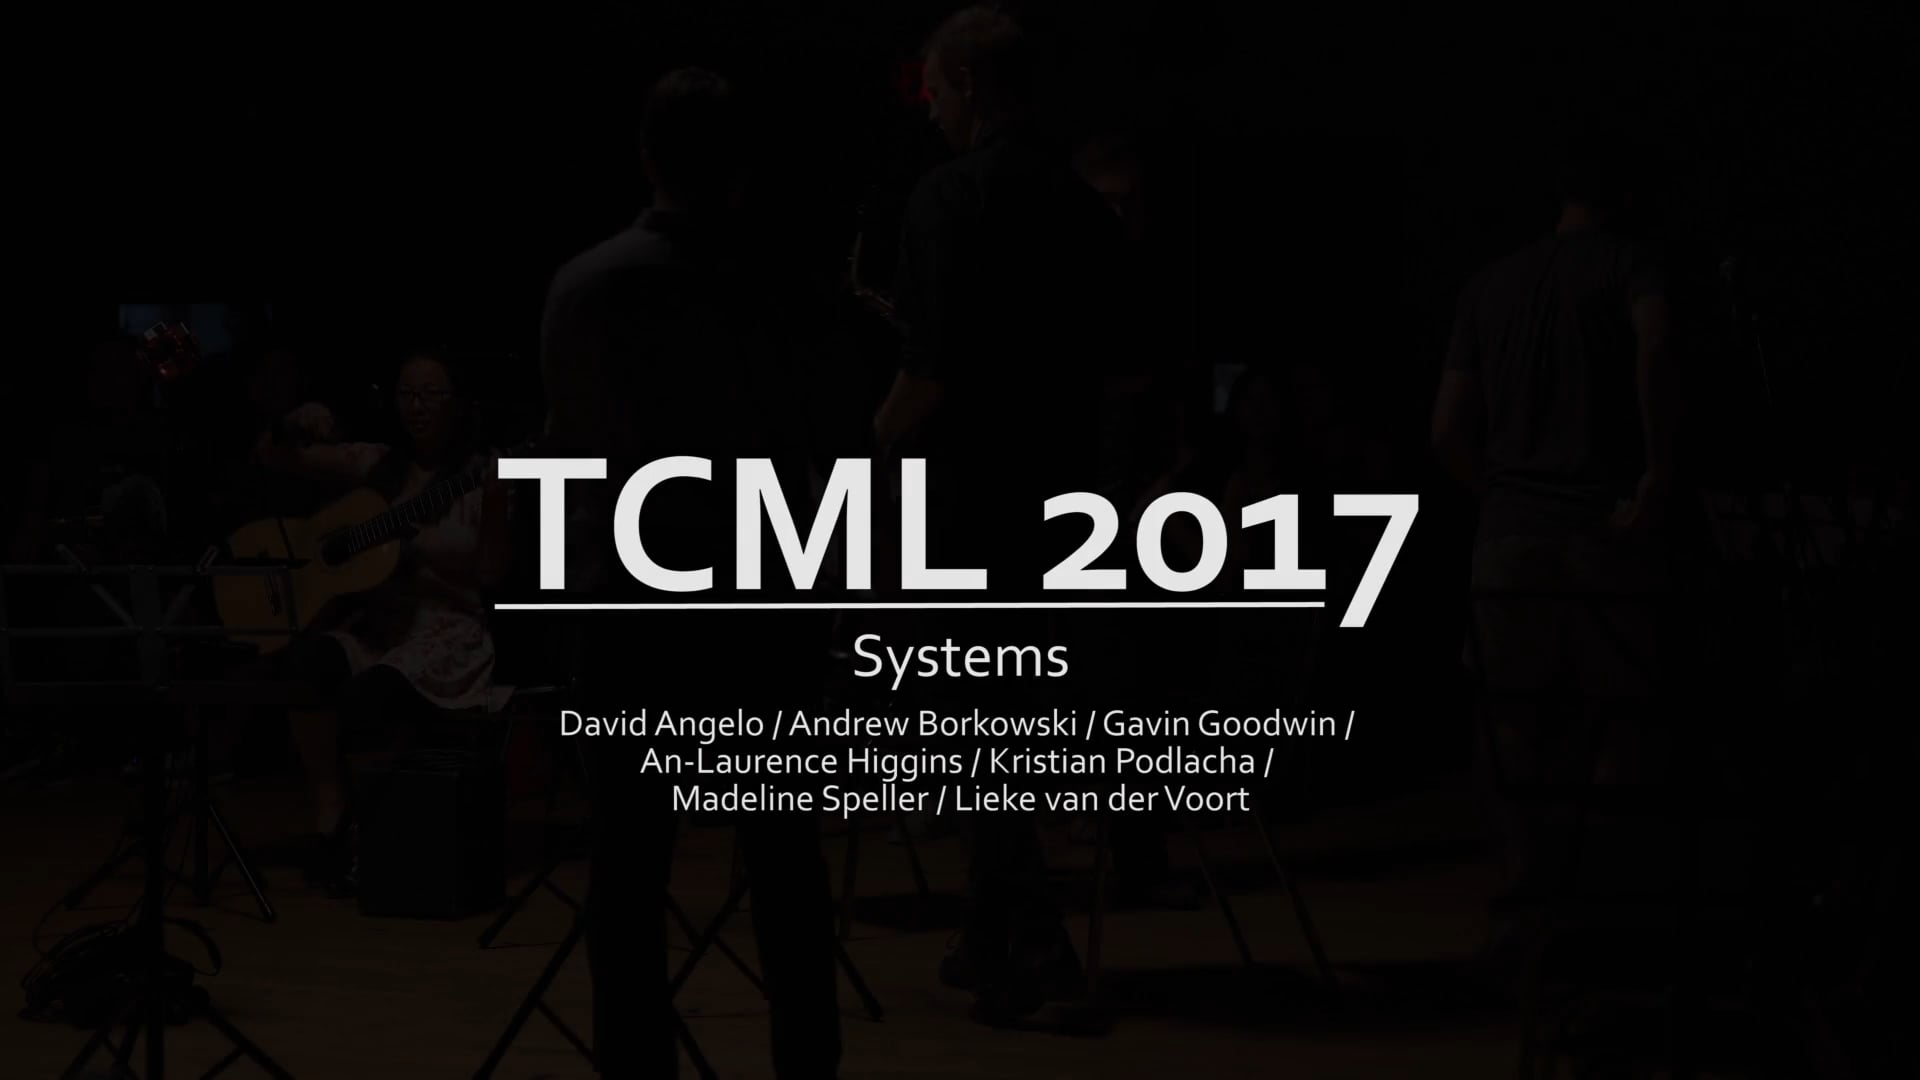 Systems (TCML 2017)